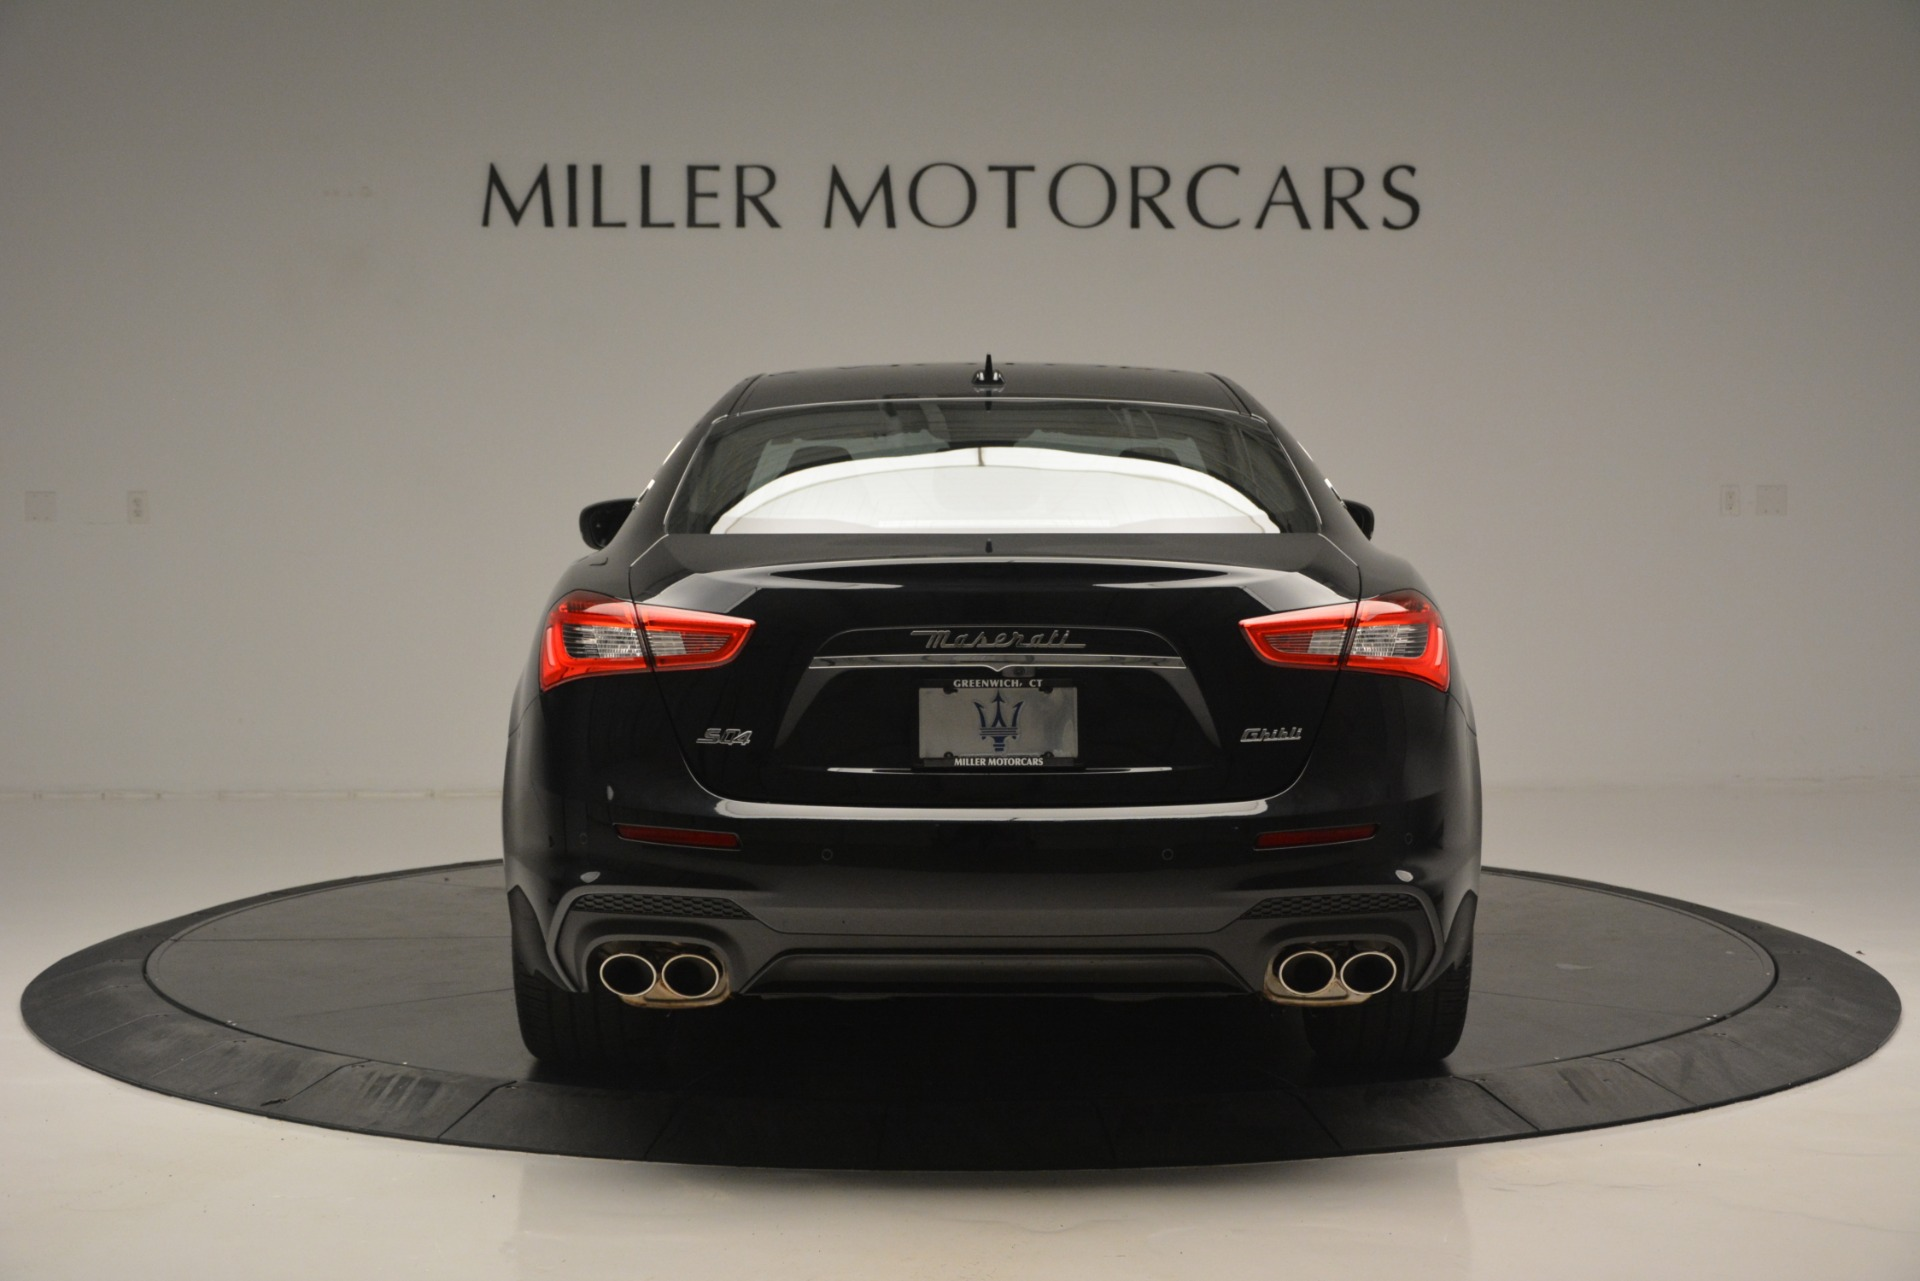 New 2019 Maserati Ghibli S Q4 GranSport For Sale In Westport, CT 2765_p6